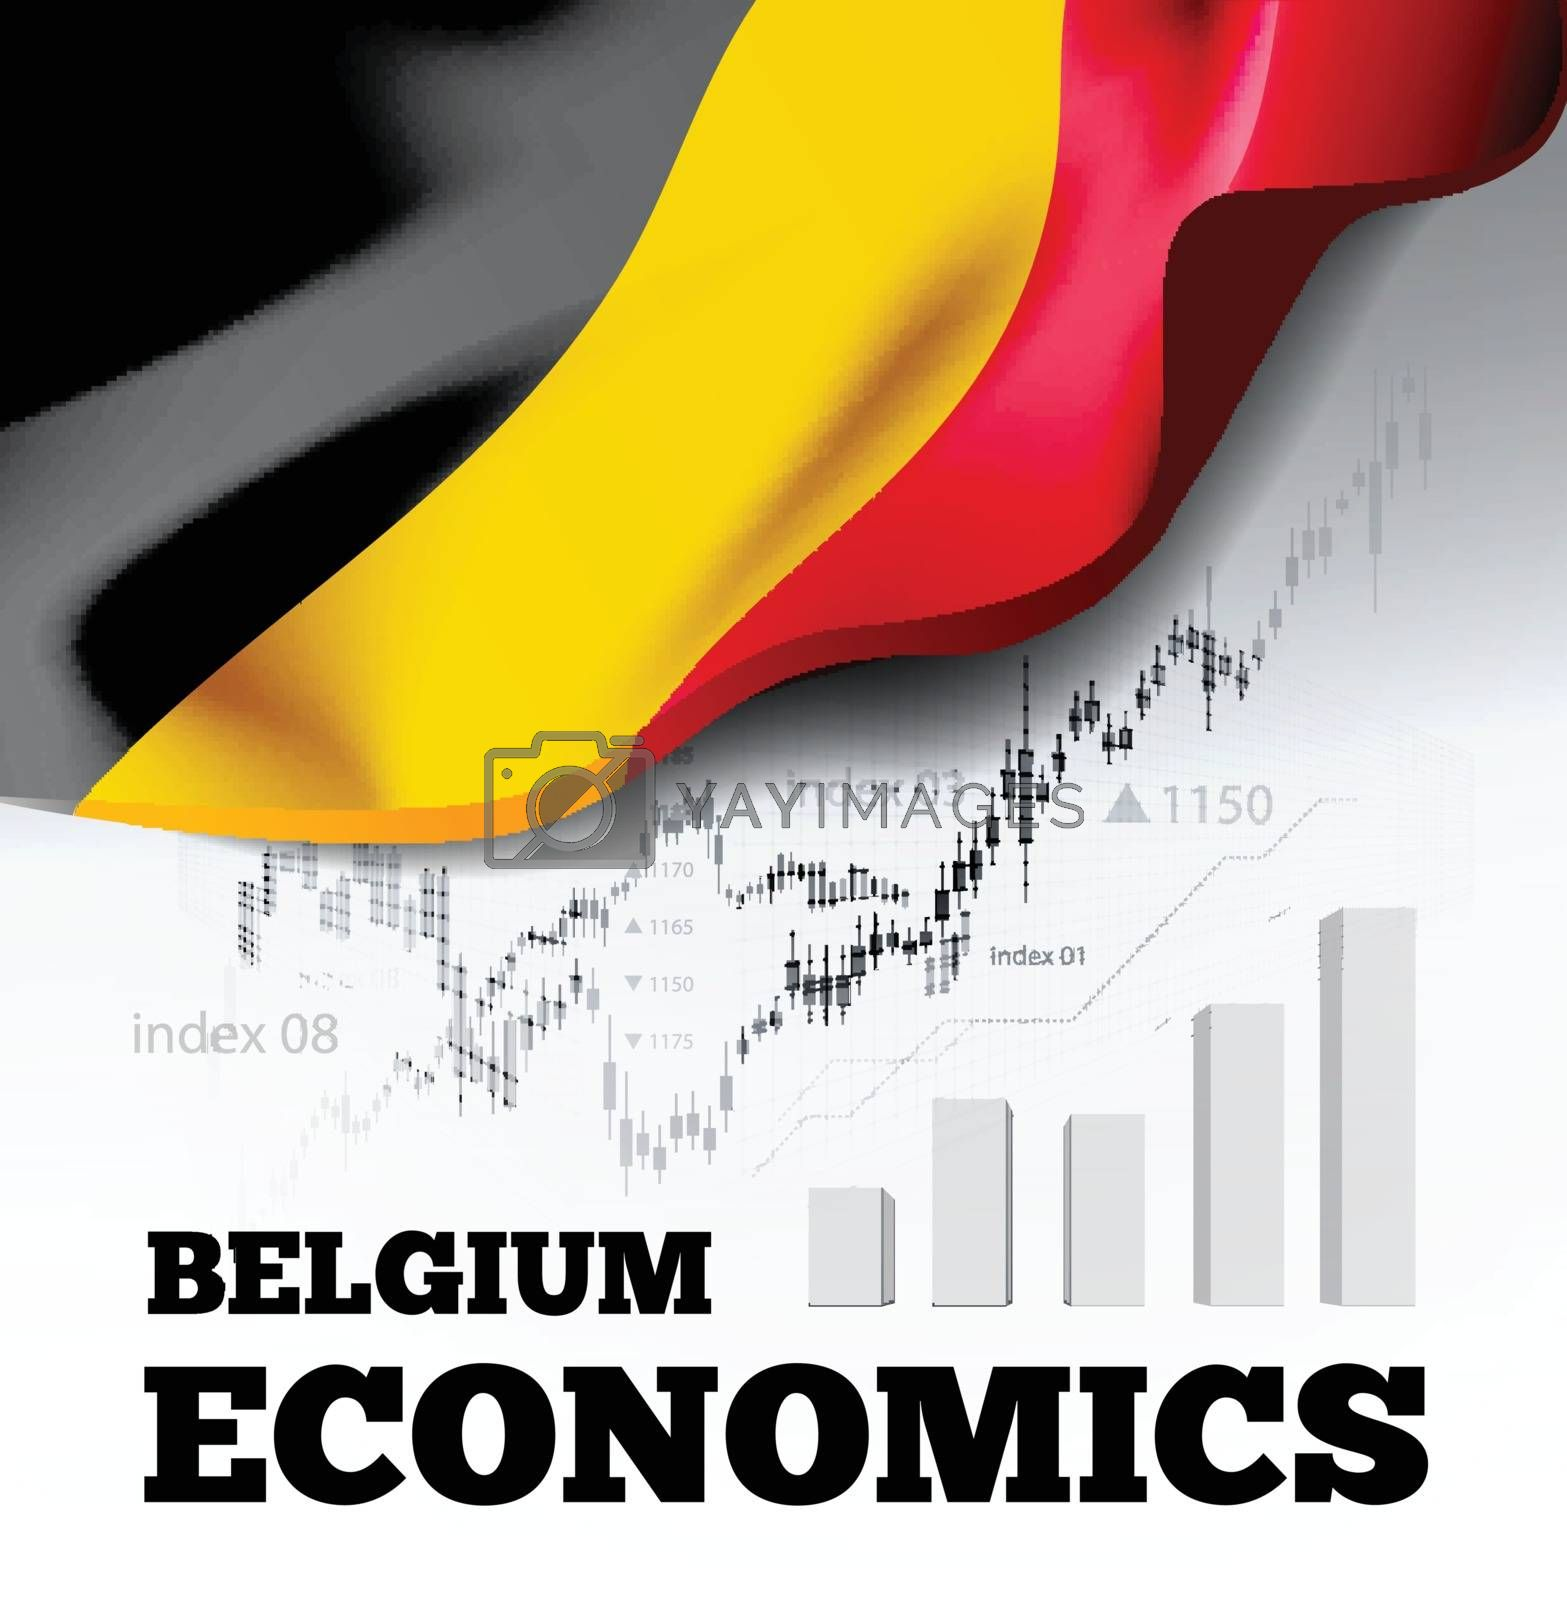 Belgium economics vector illustration with the flag of Belgium and business chart, bar chart stock numbers bull market, uptrend line graph symbolizes the welfare growth